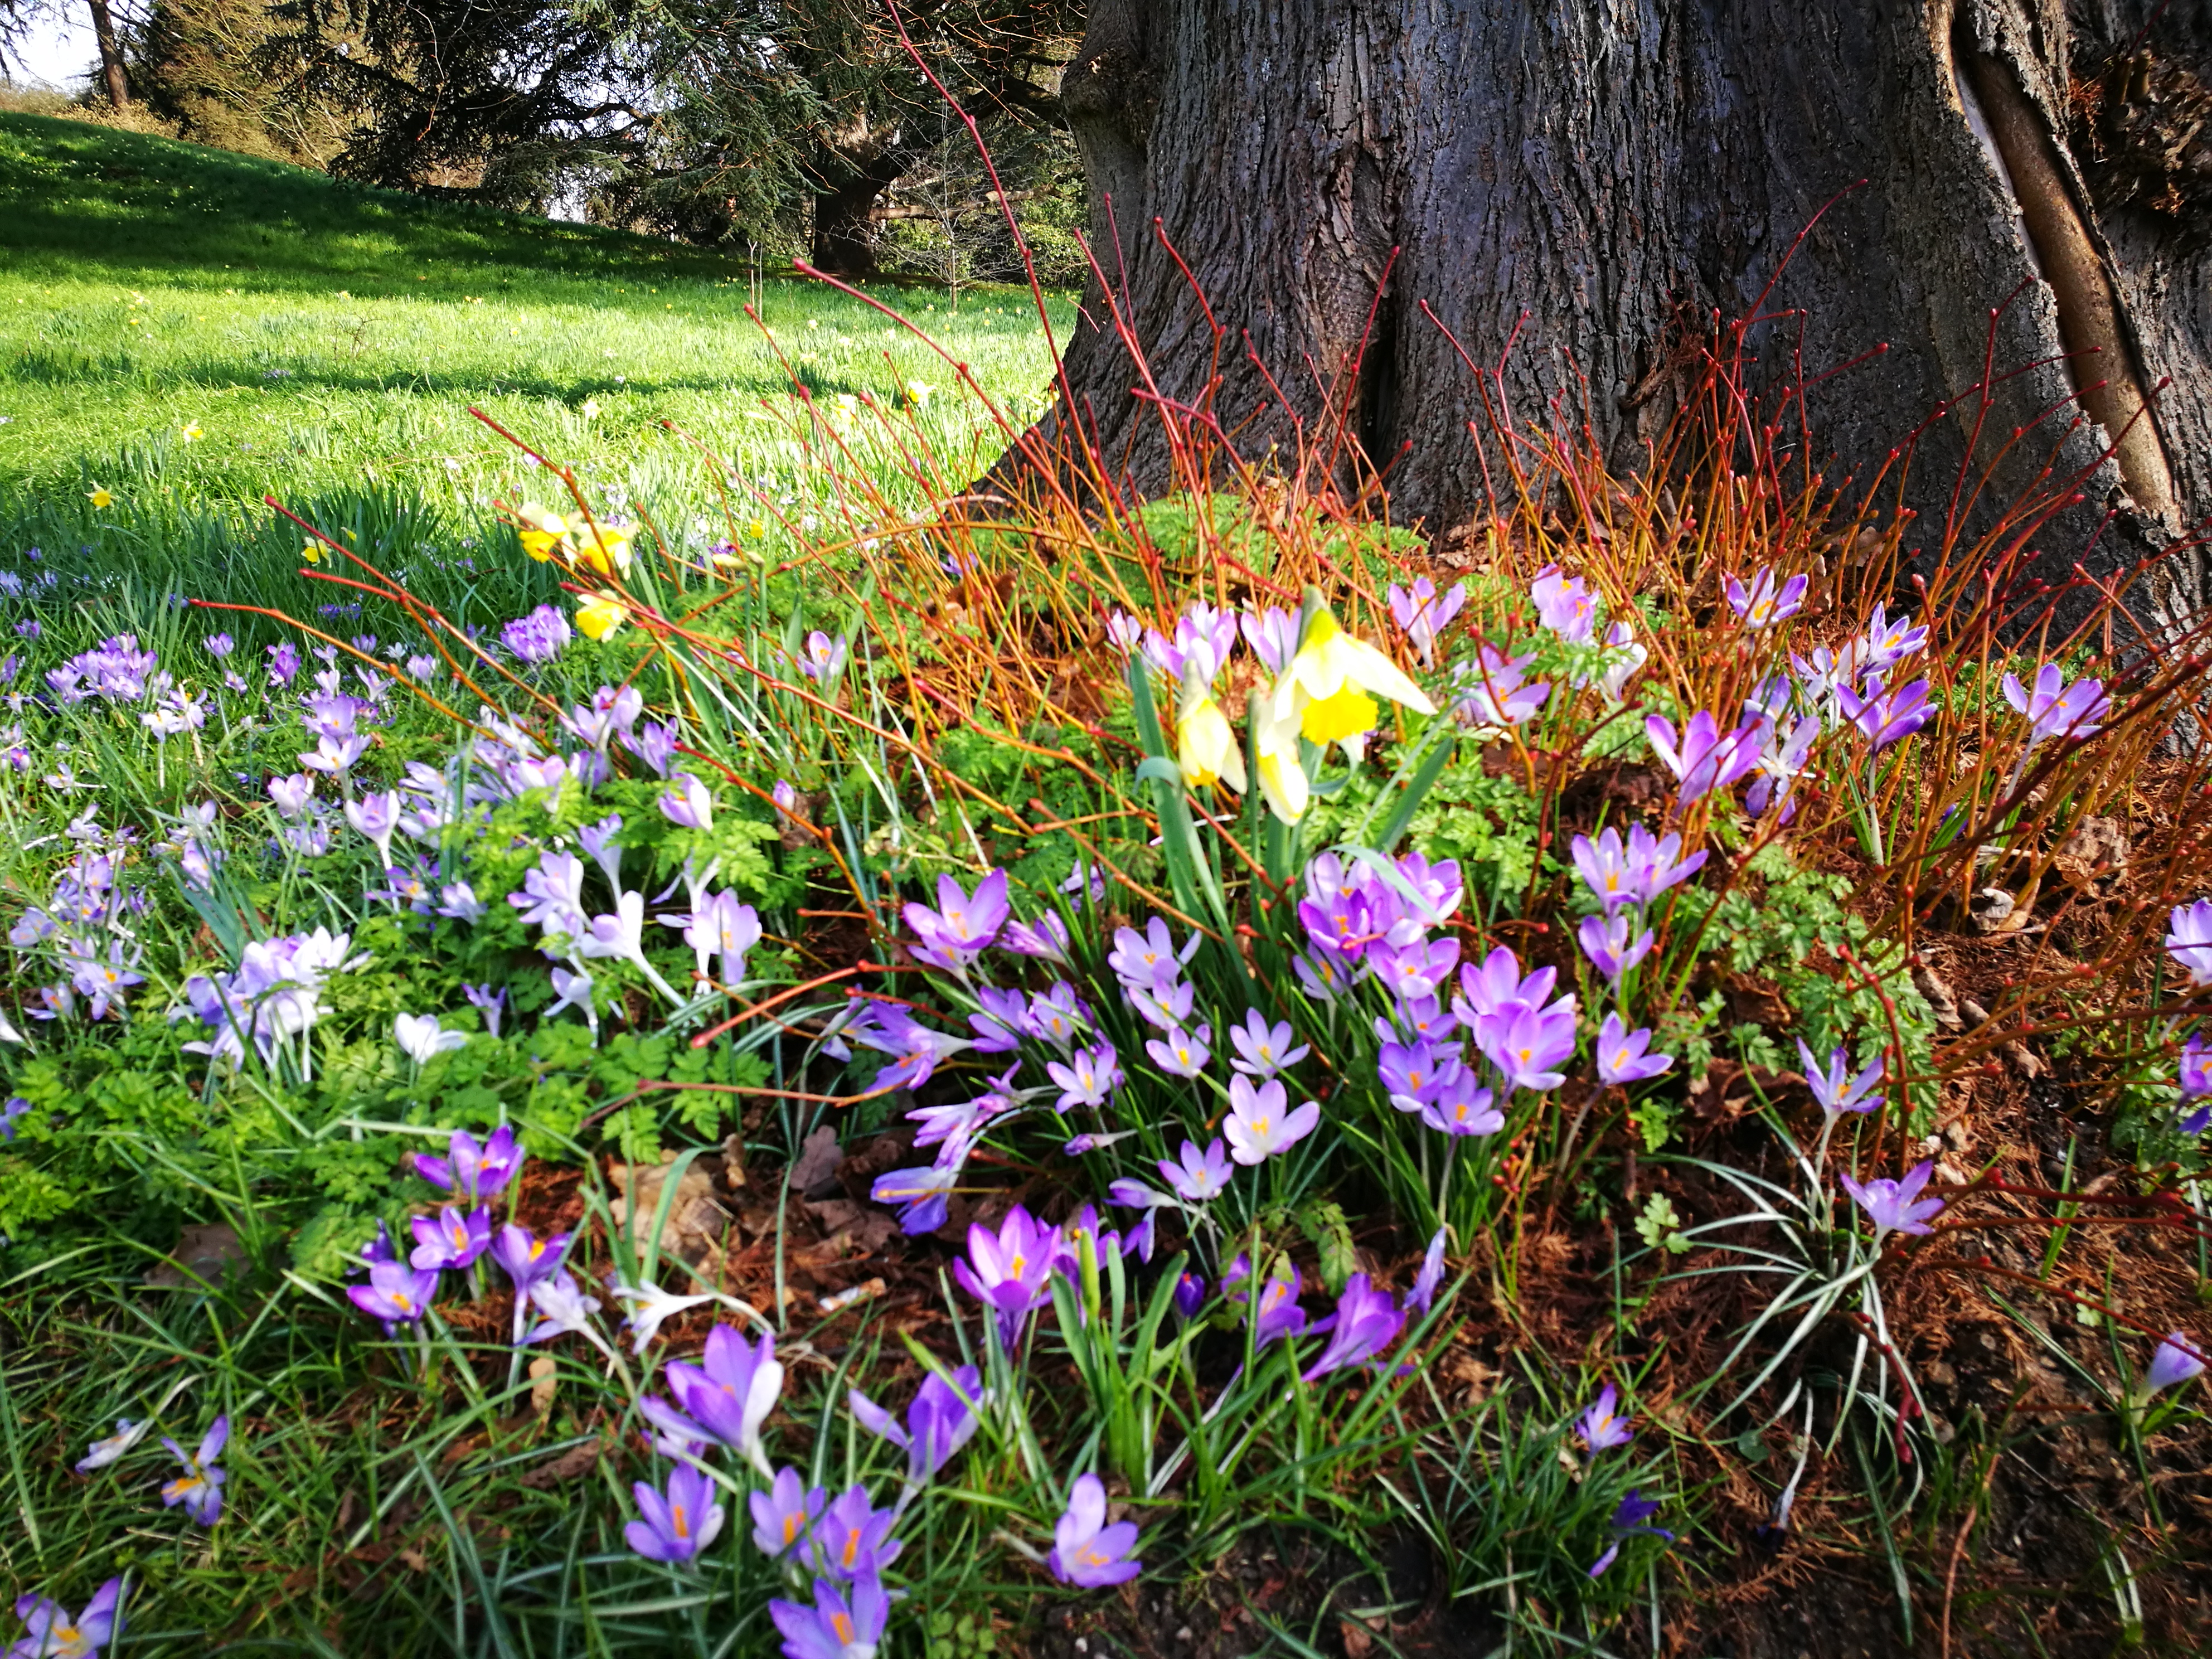 Crocus and daffodils growing under a tree.